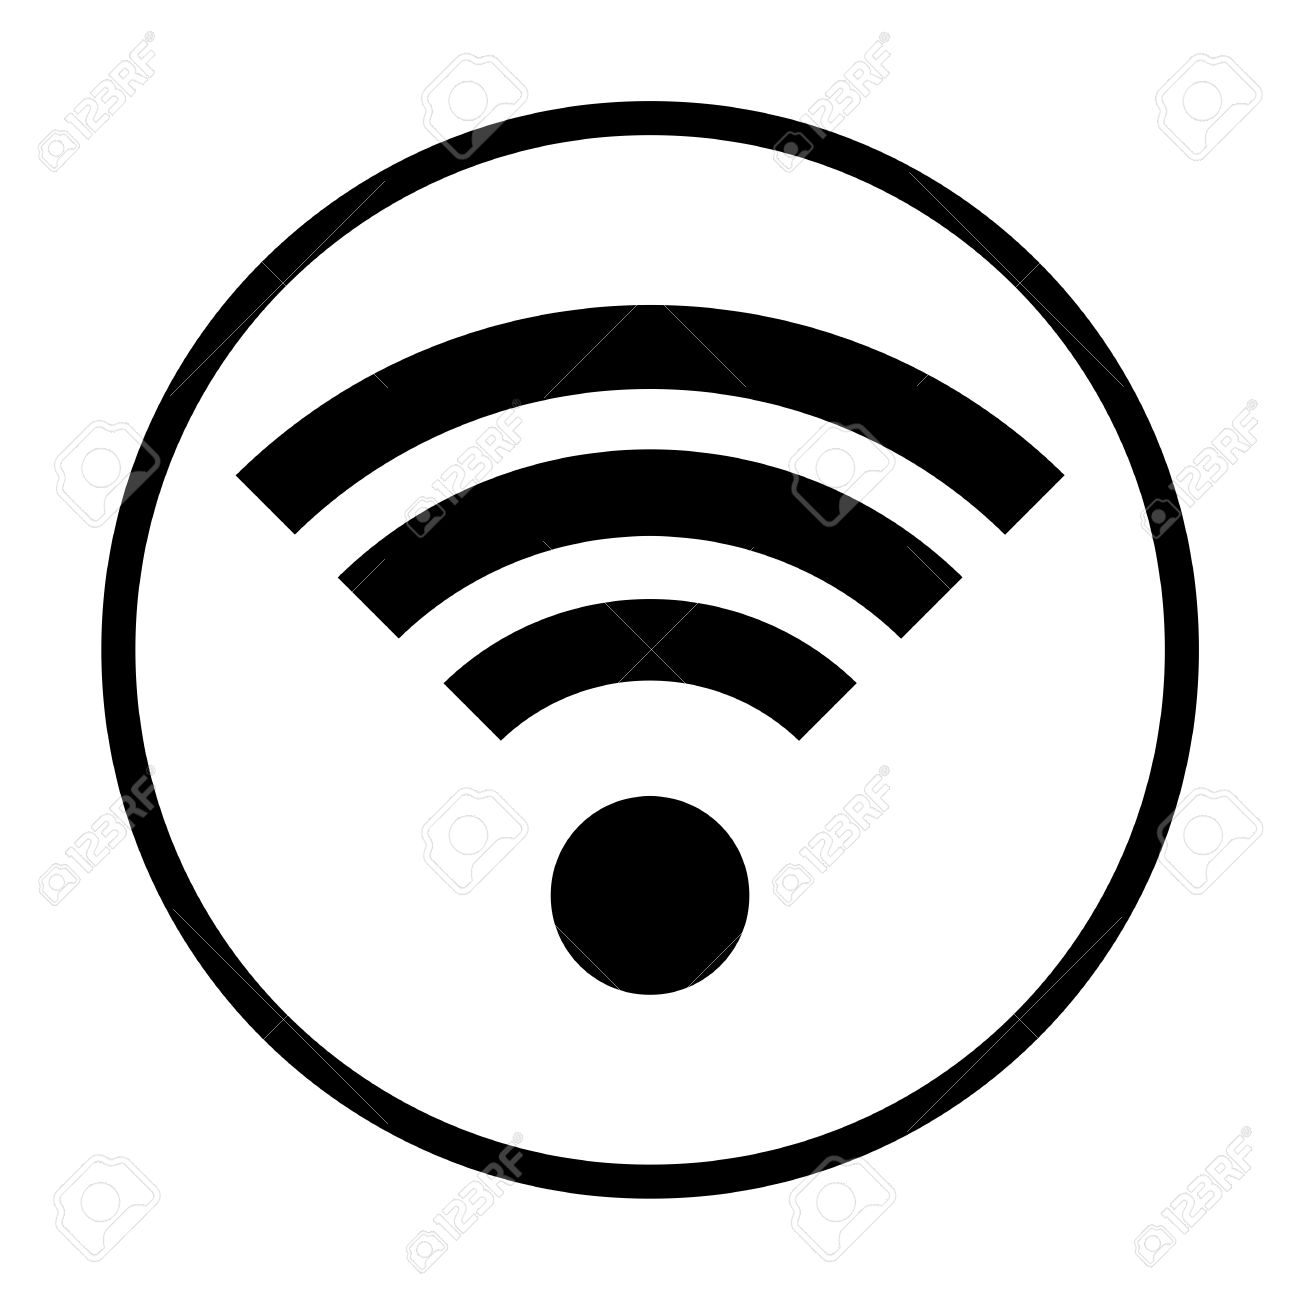 Wireless Circle Wifi Icon Royalty Free Cliparts, Vectors, And Stock ...